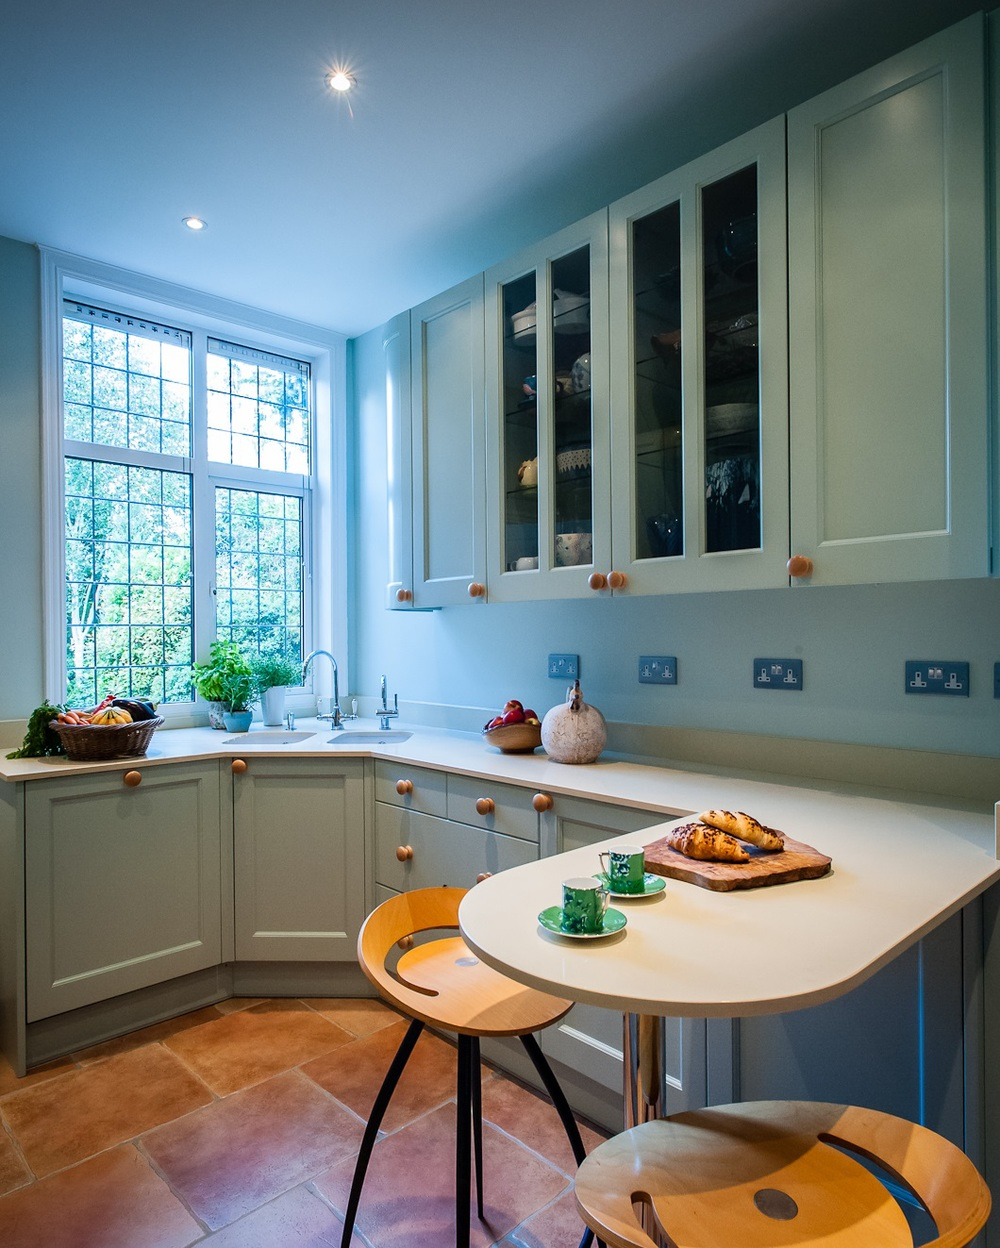 After - New Kitchen! Photo credit: Paul Winch-Furness